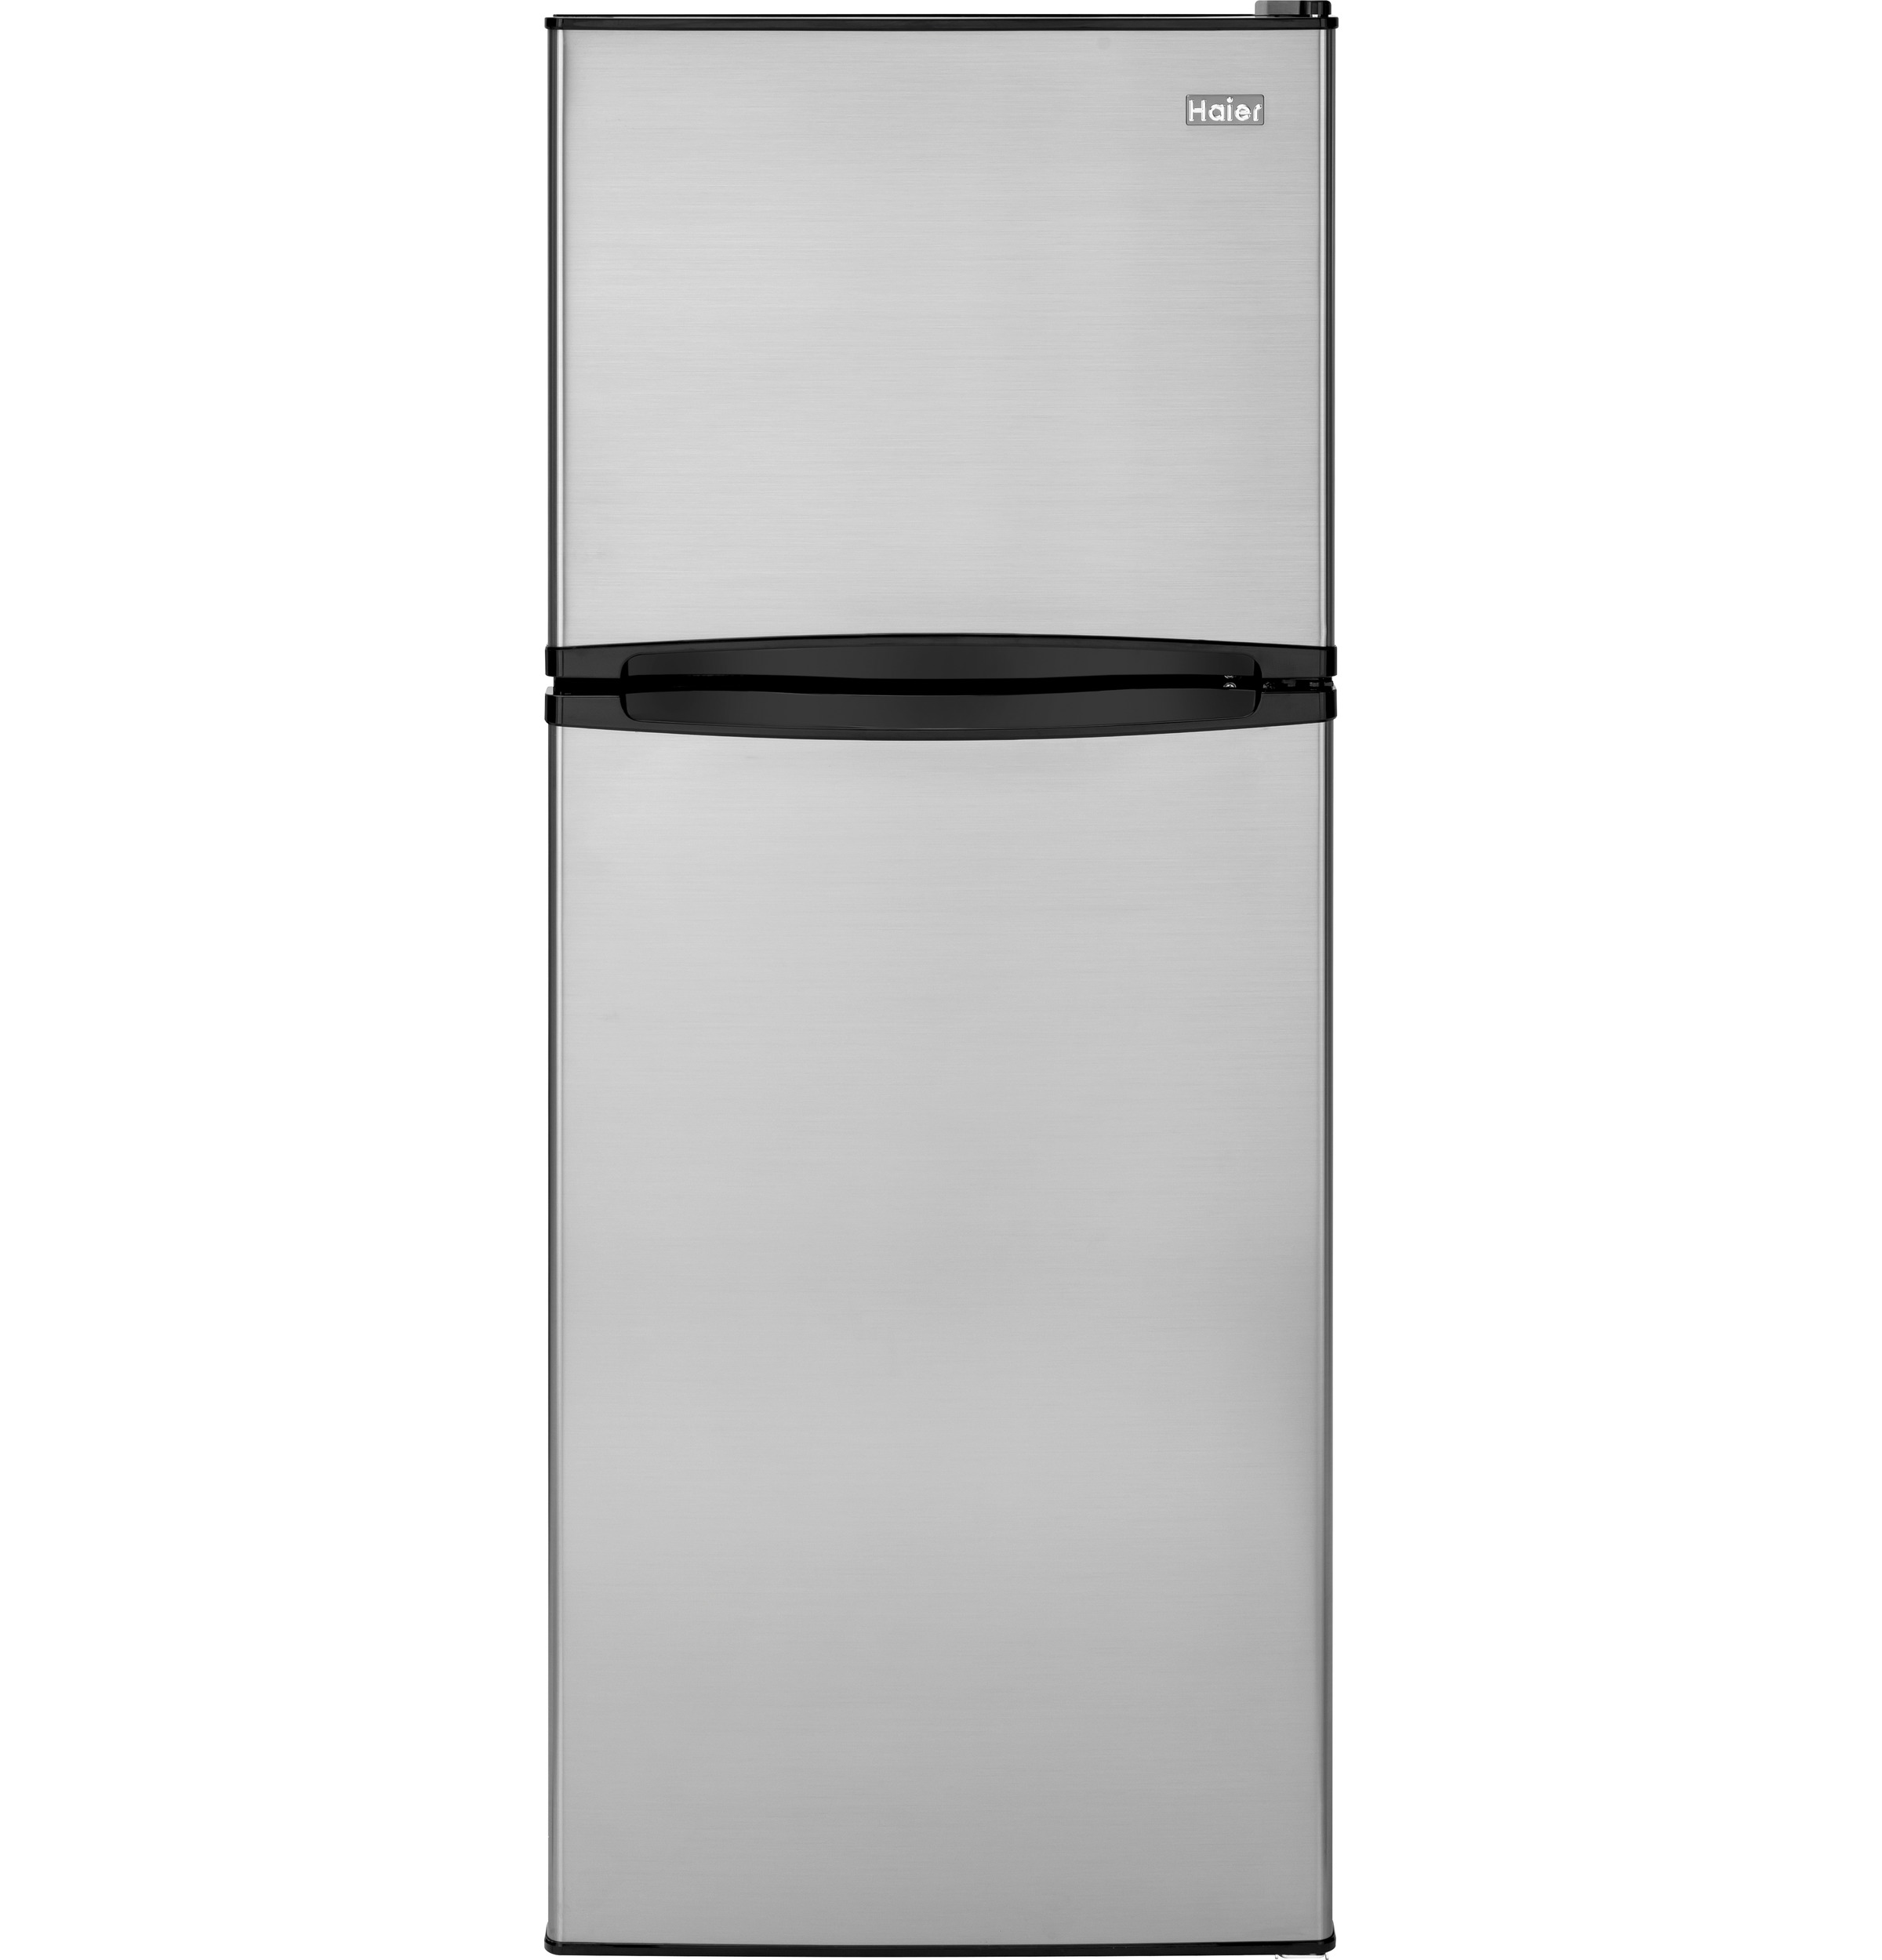 Haier 11.5 Cu. Ft. Top Freezer Refrigerator